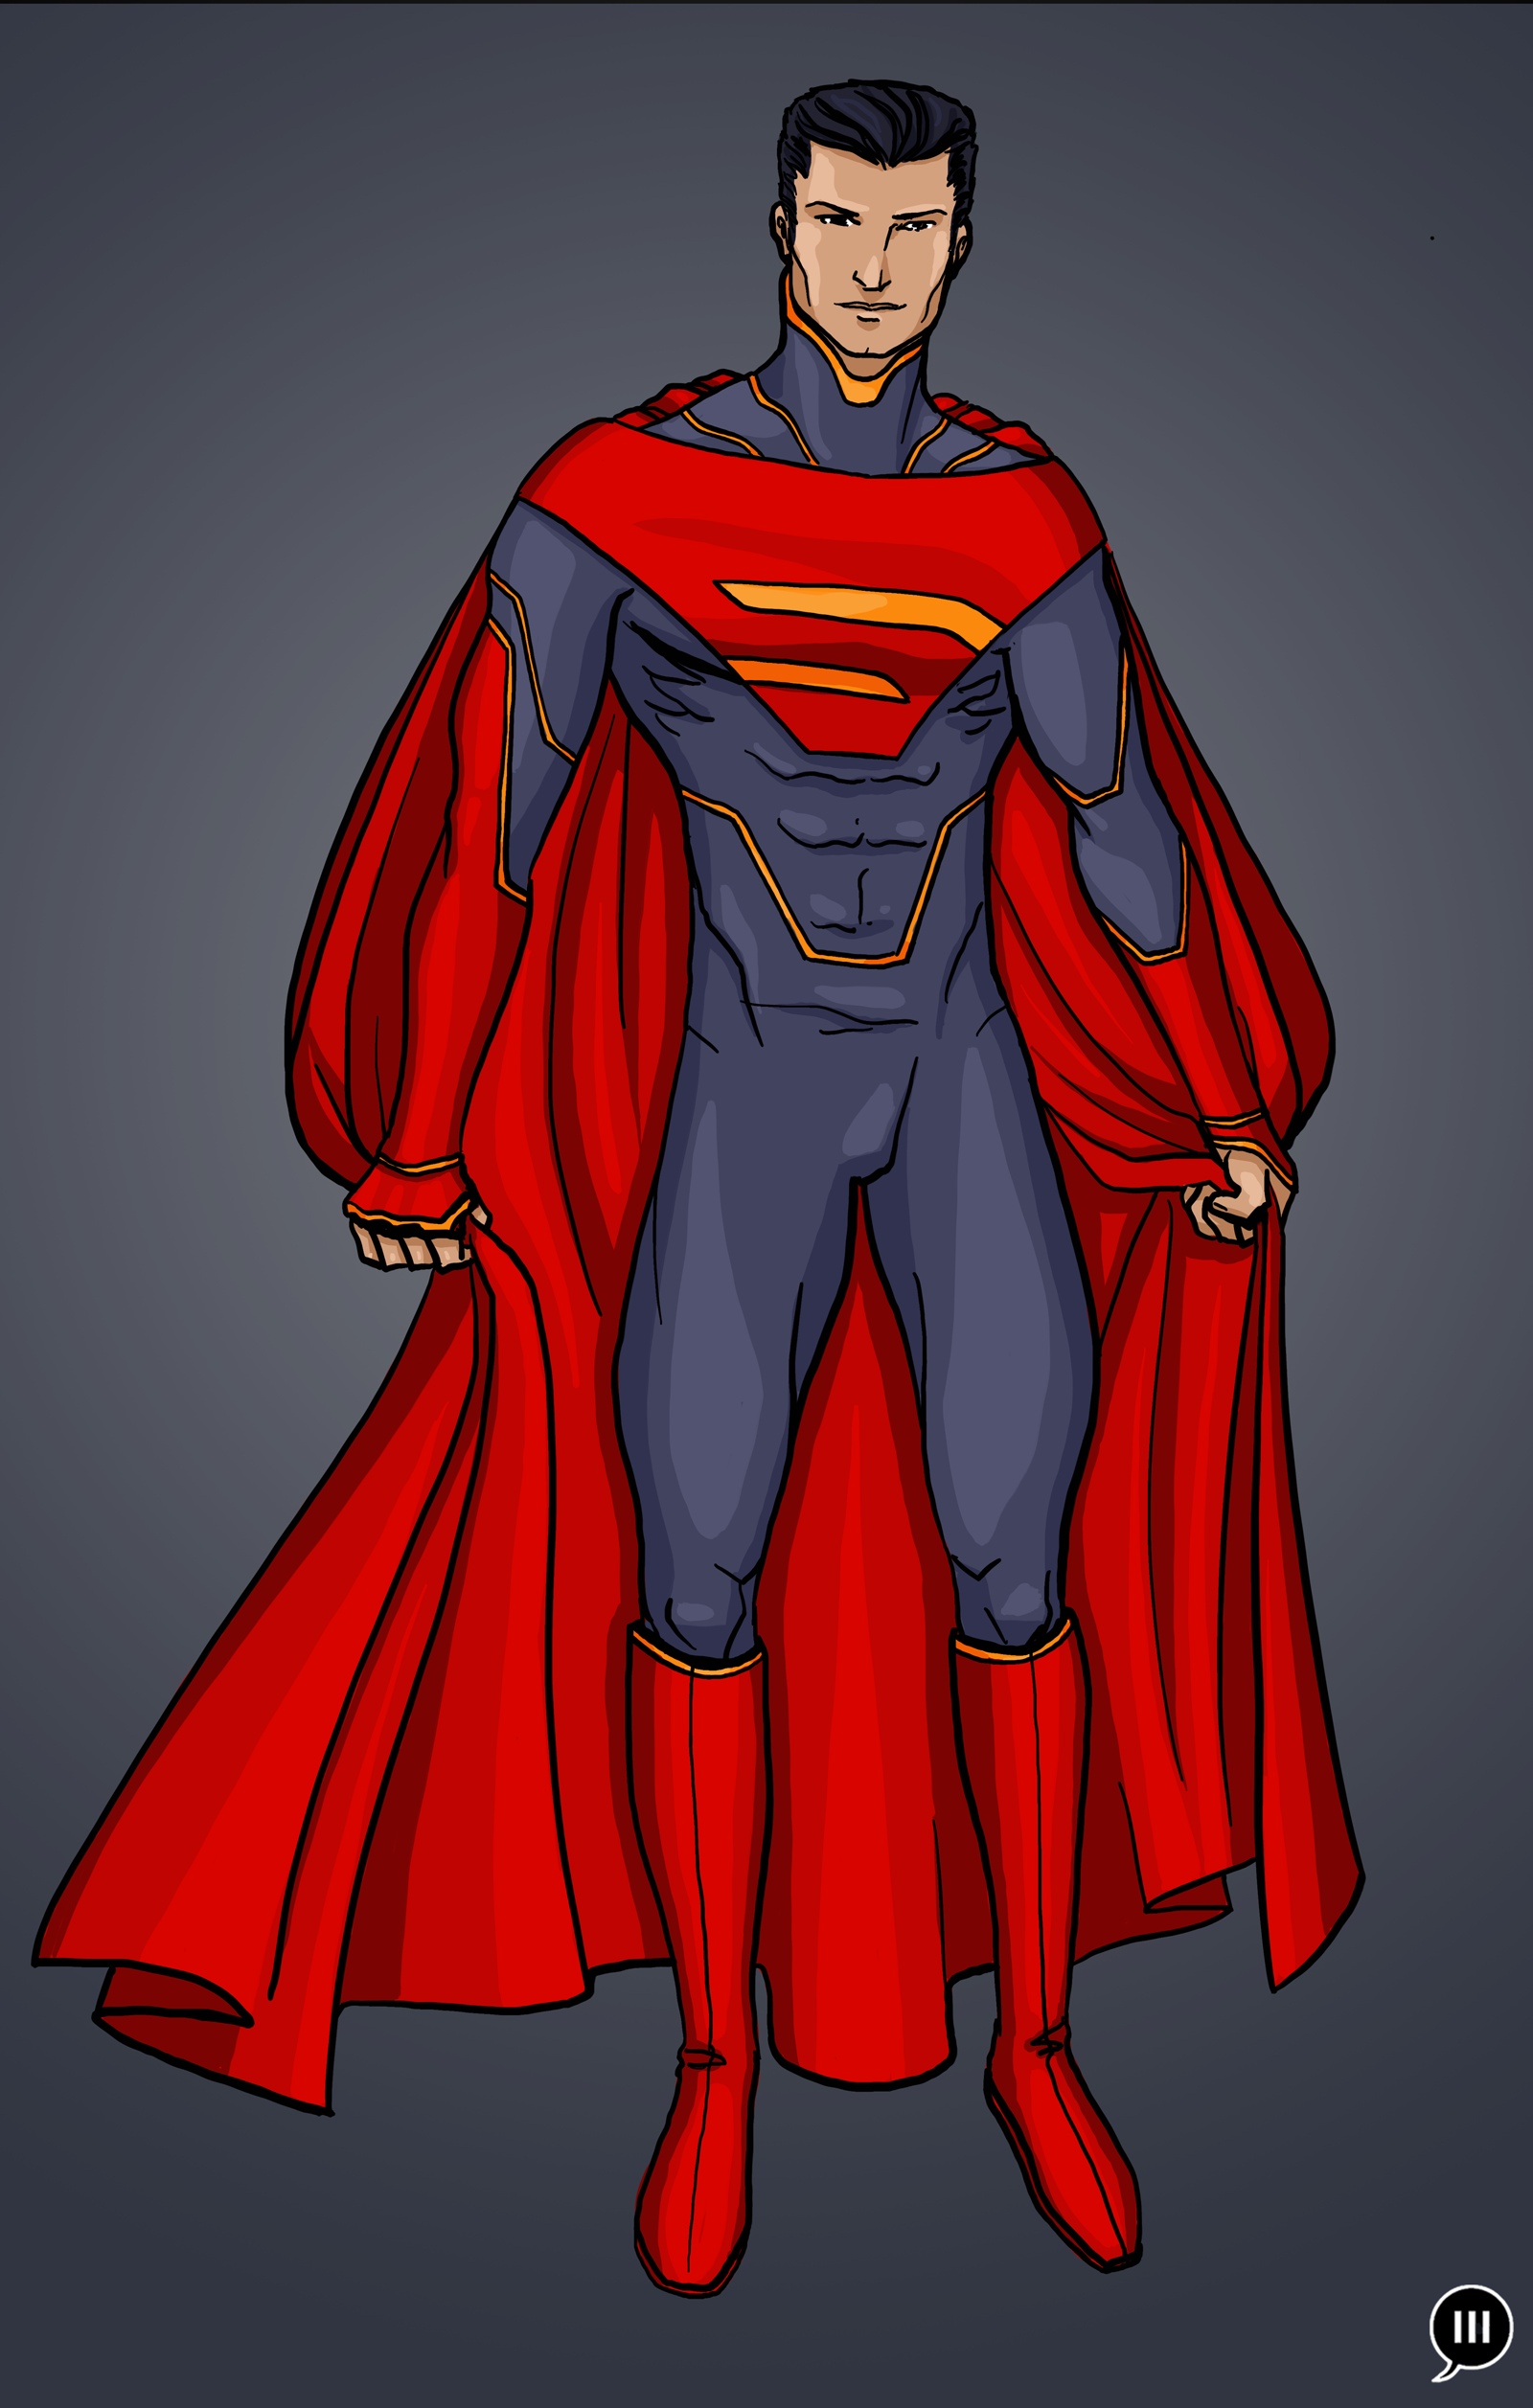 trdl1902_superman_mosrz.png